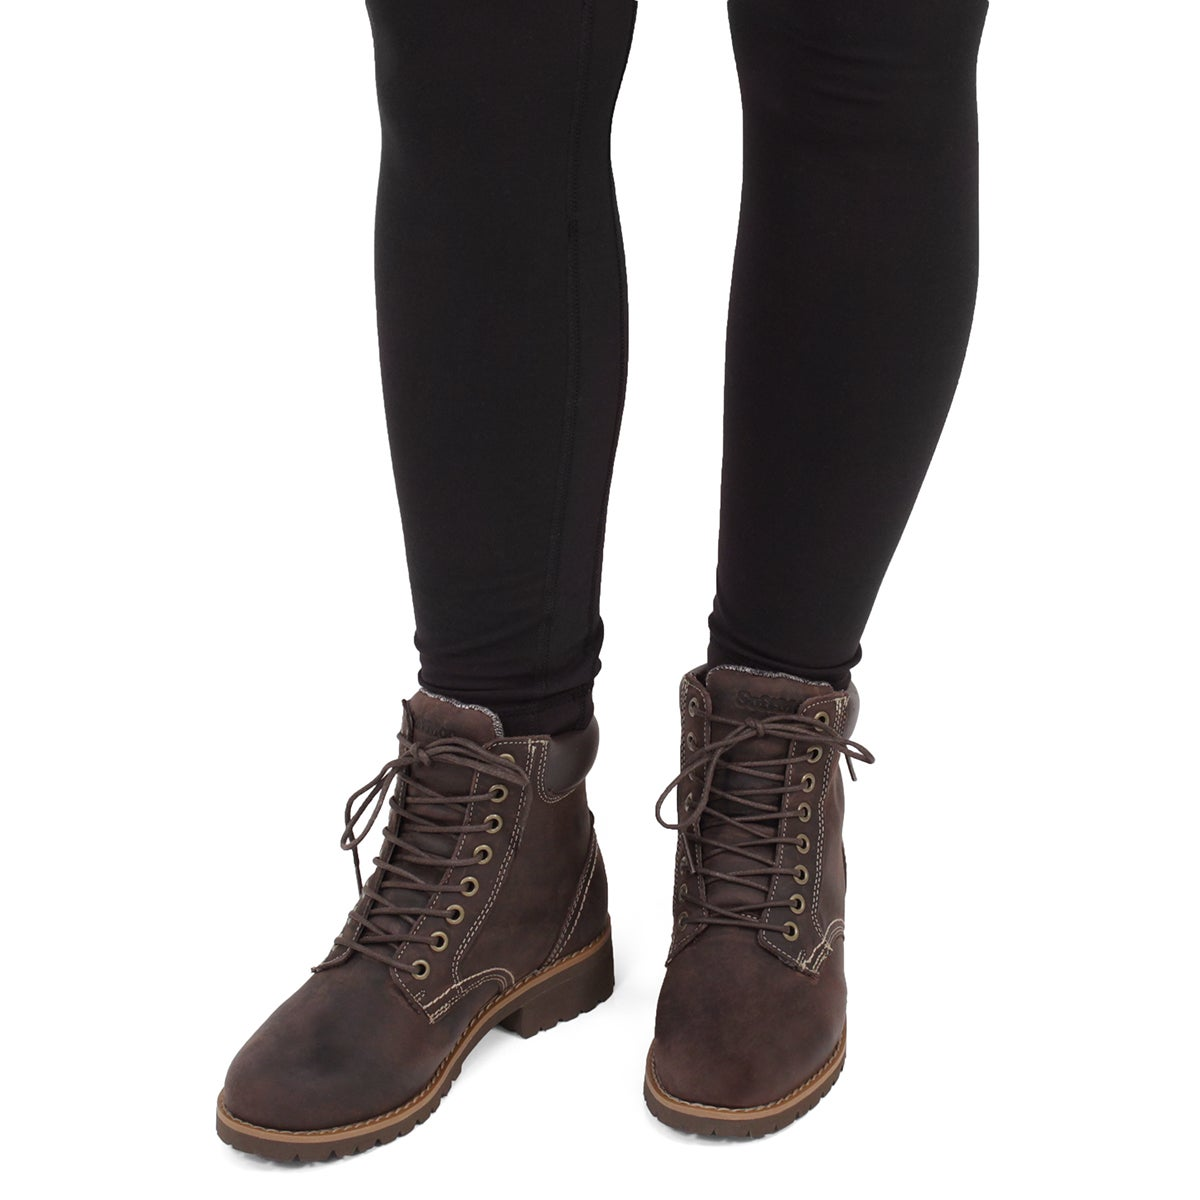 Lds Dalisse 2 brown combat boot